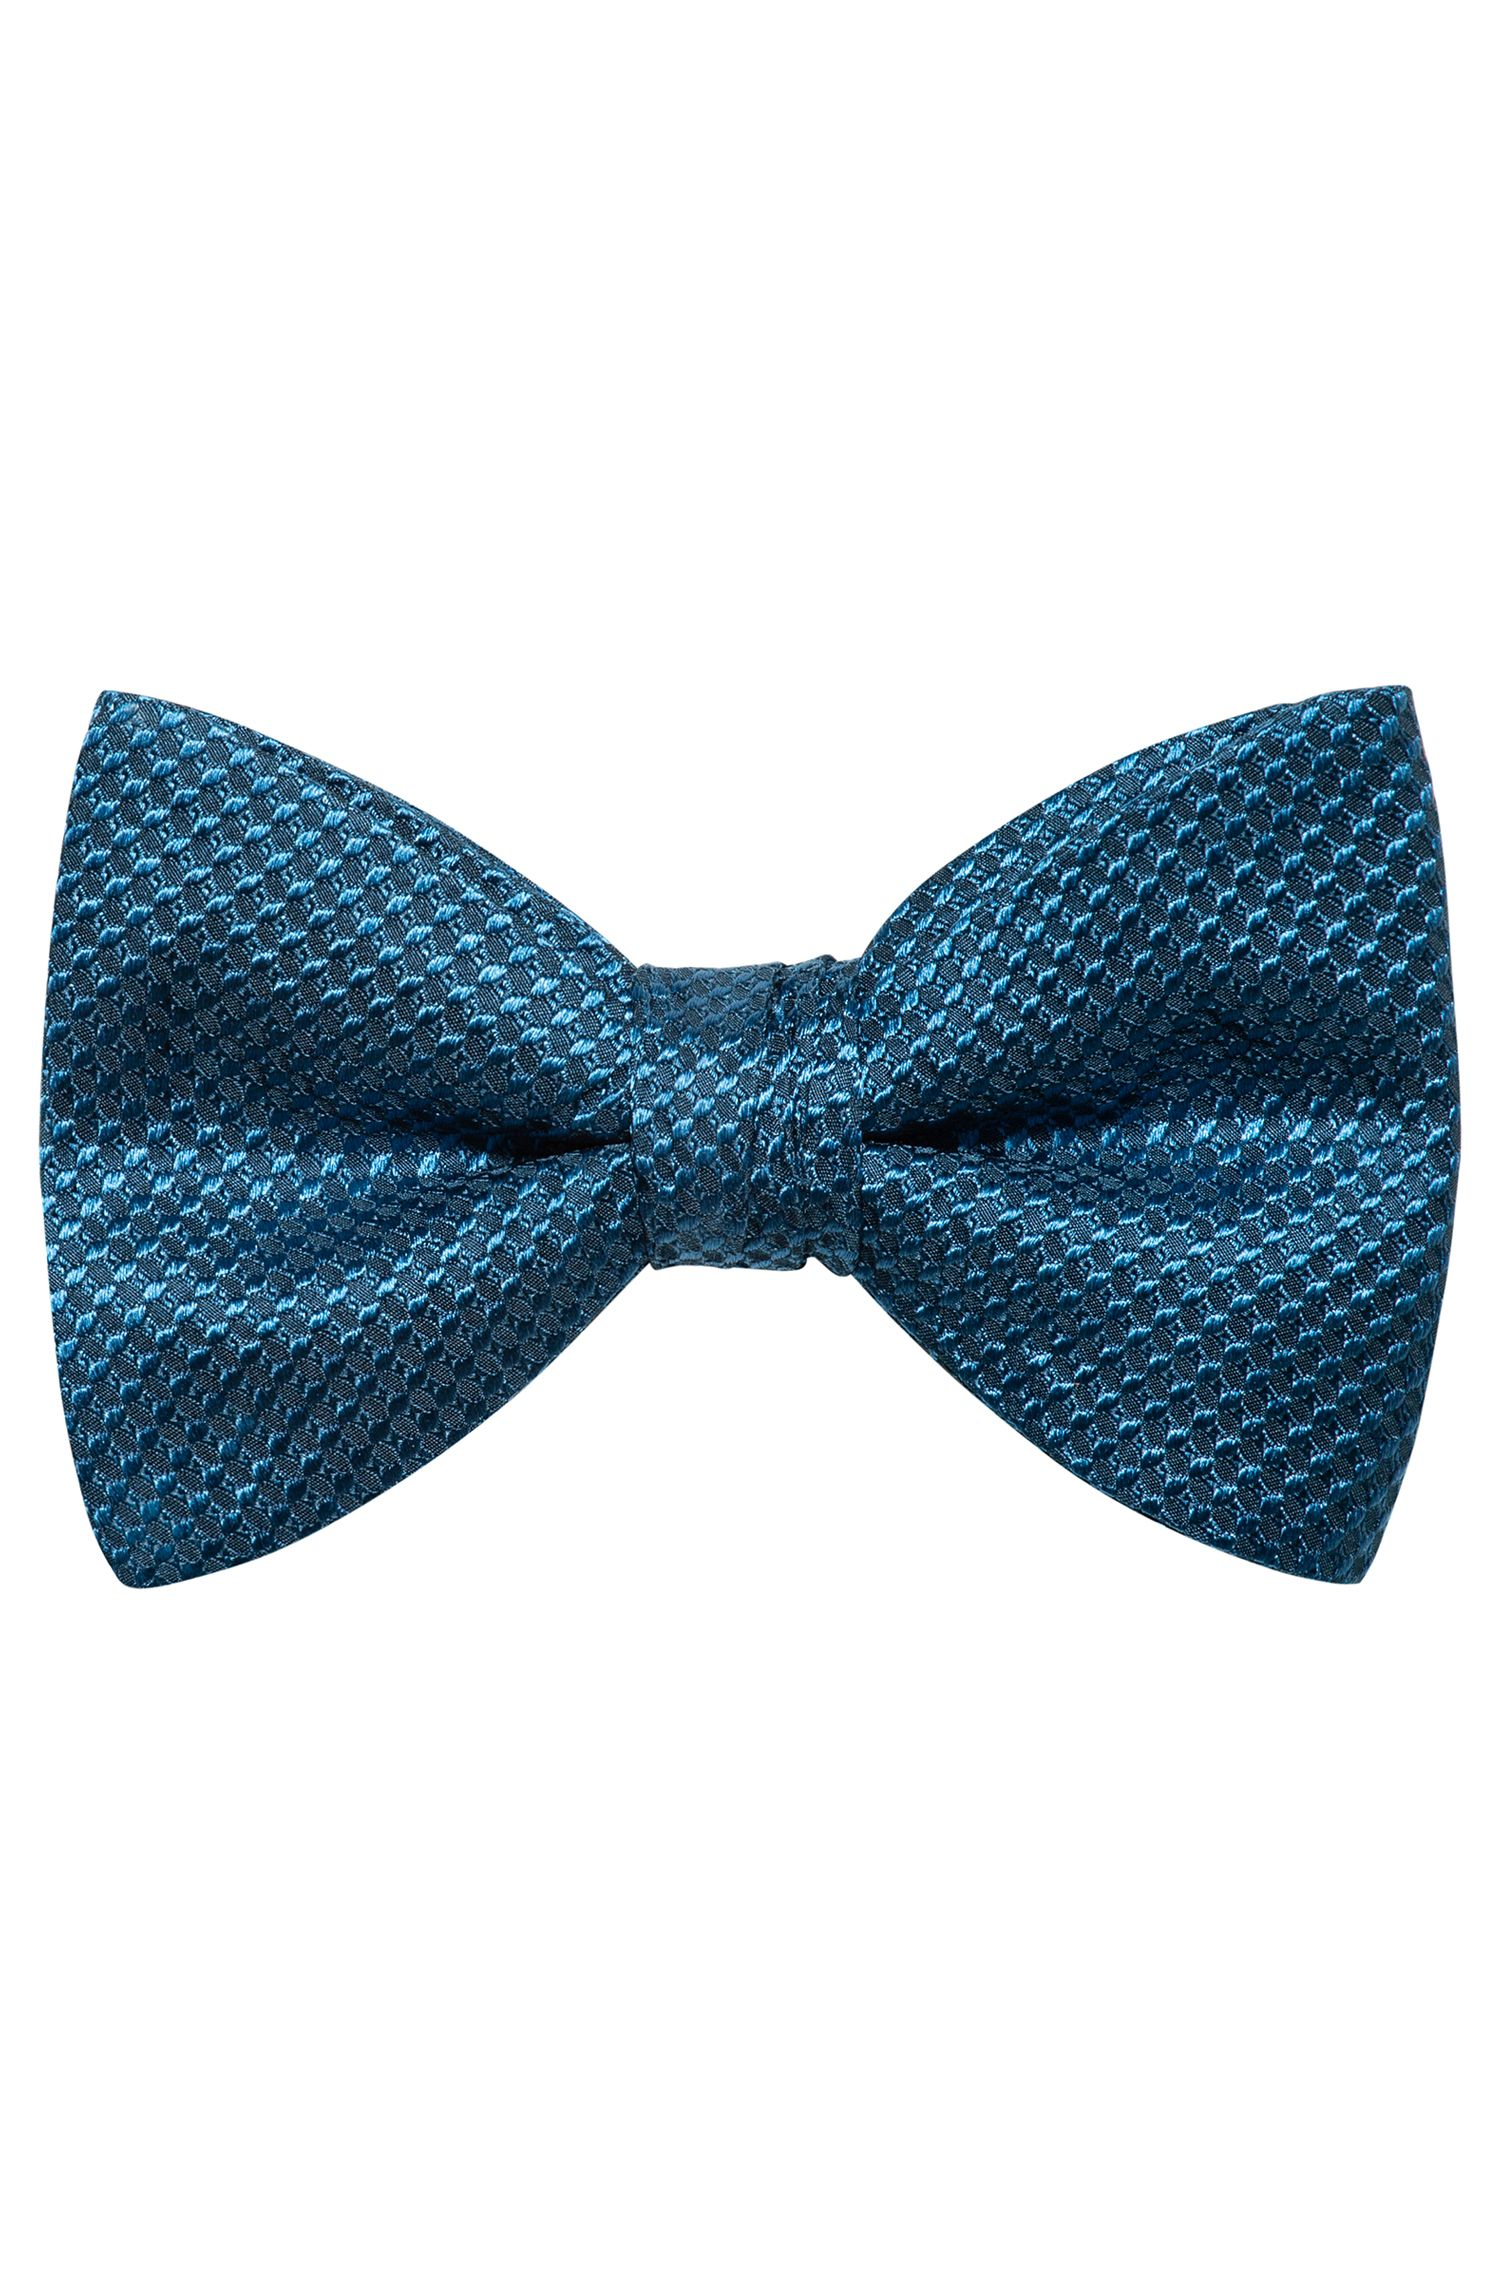 Micro-pattern bow tie in silk jacquard, Blue